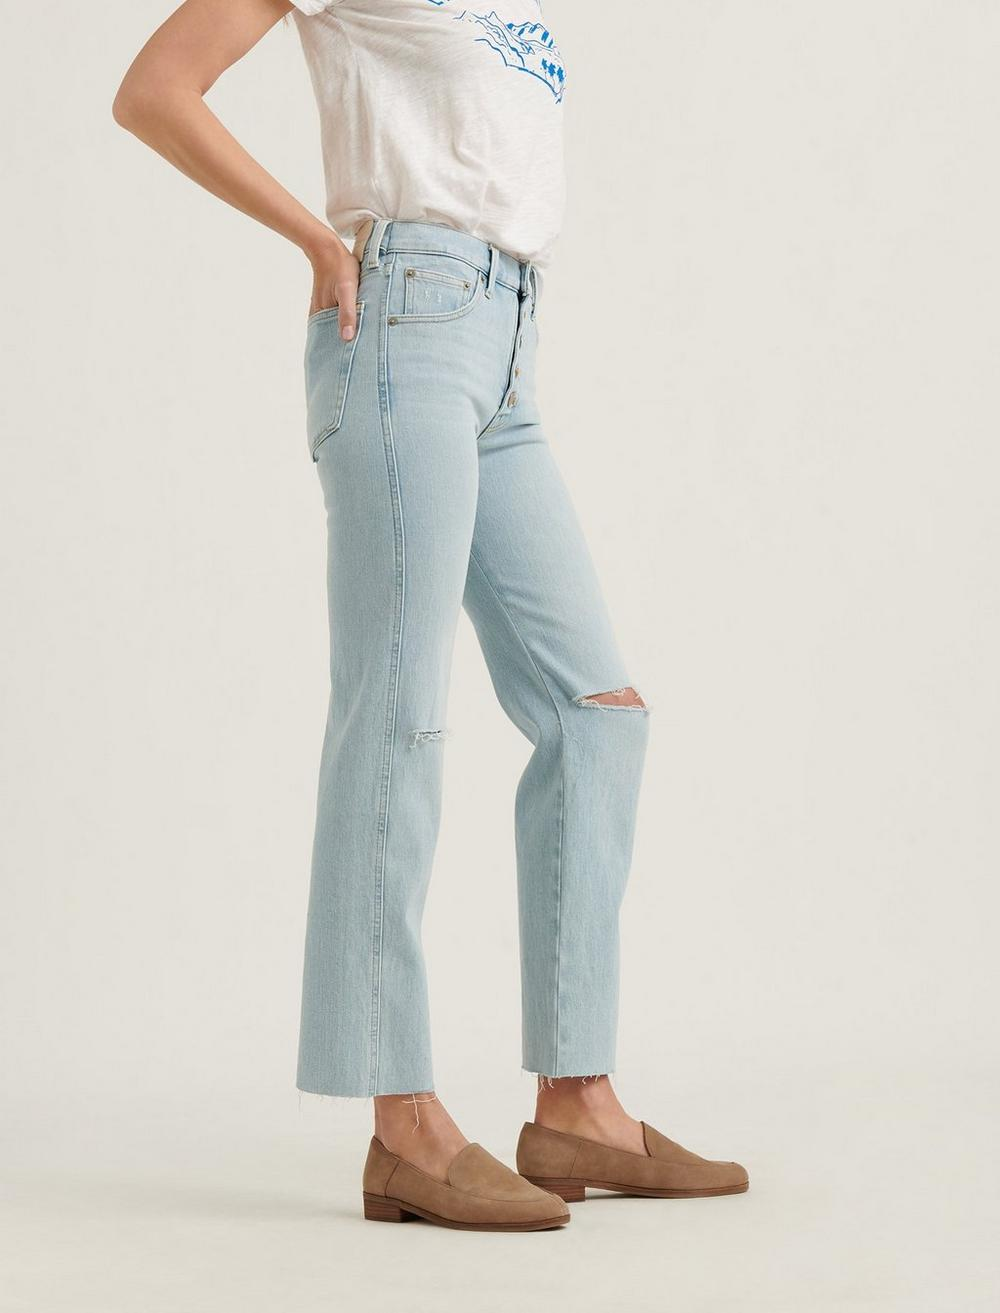 MID RISE AUTHENTIC STRAIGHT JEAN, image 2